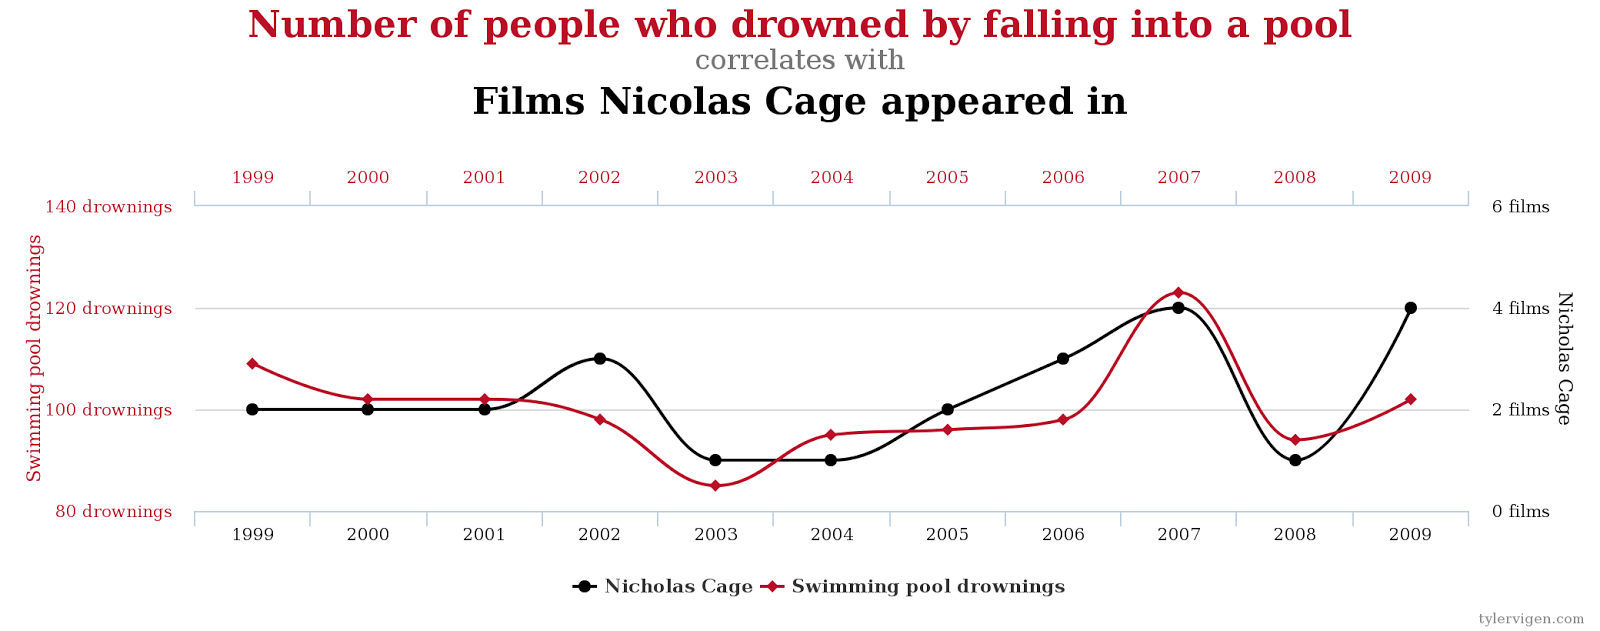 Sprurious correlations are all too easy to find.